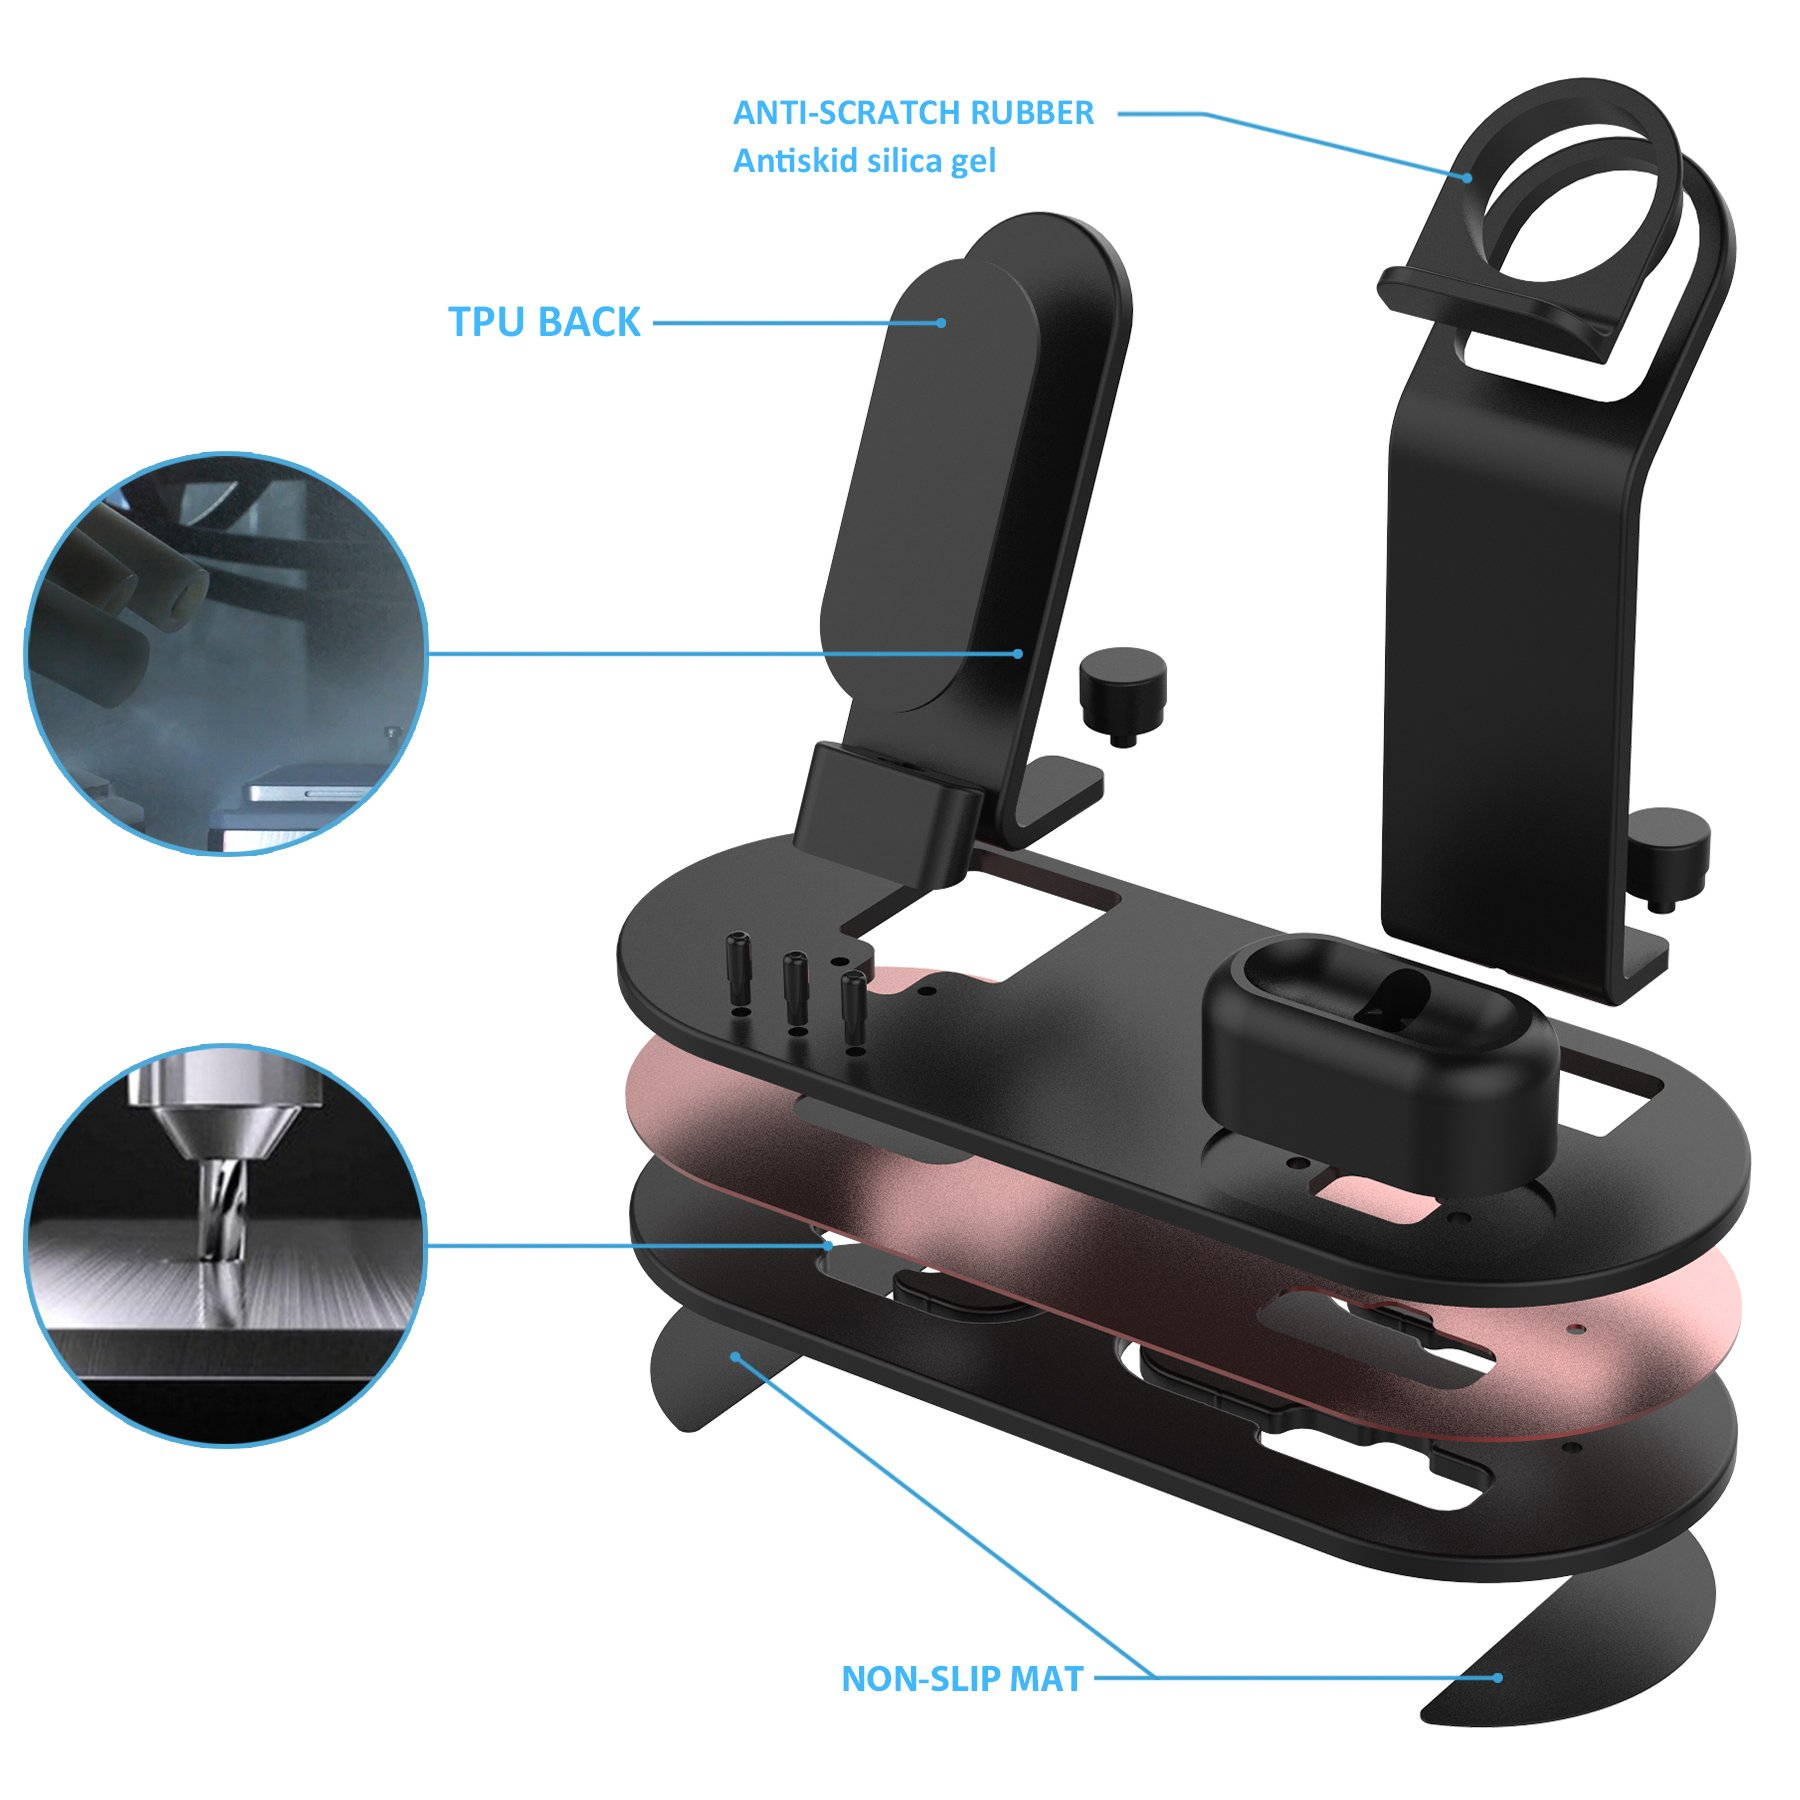 Galleon Olebr Charging Stand Charging Docks Suitable For